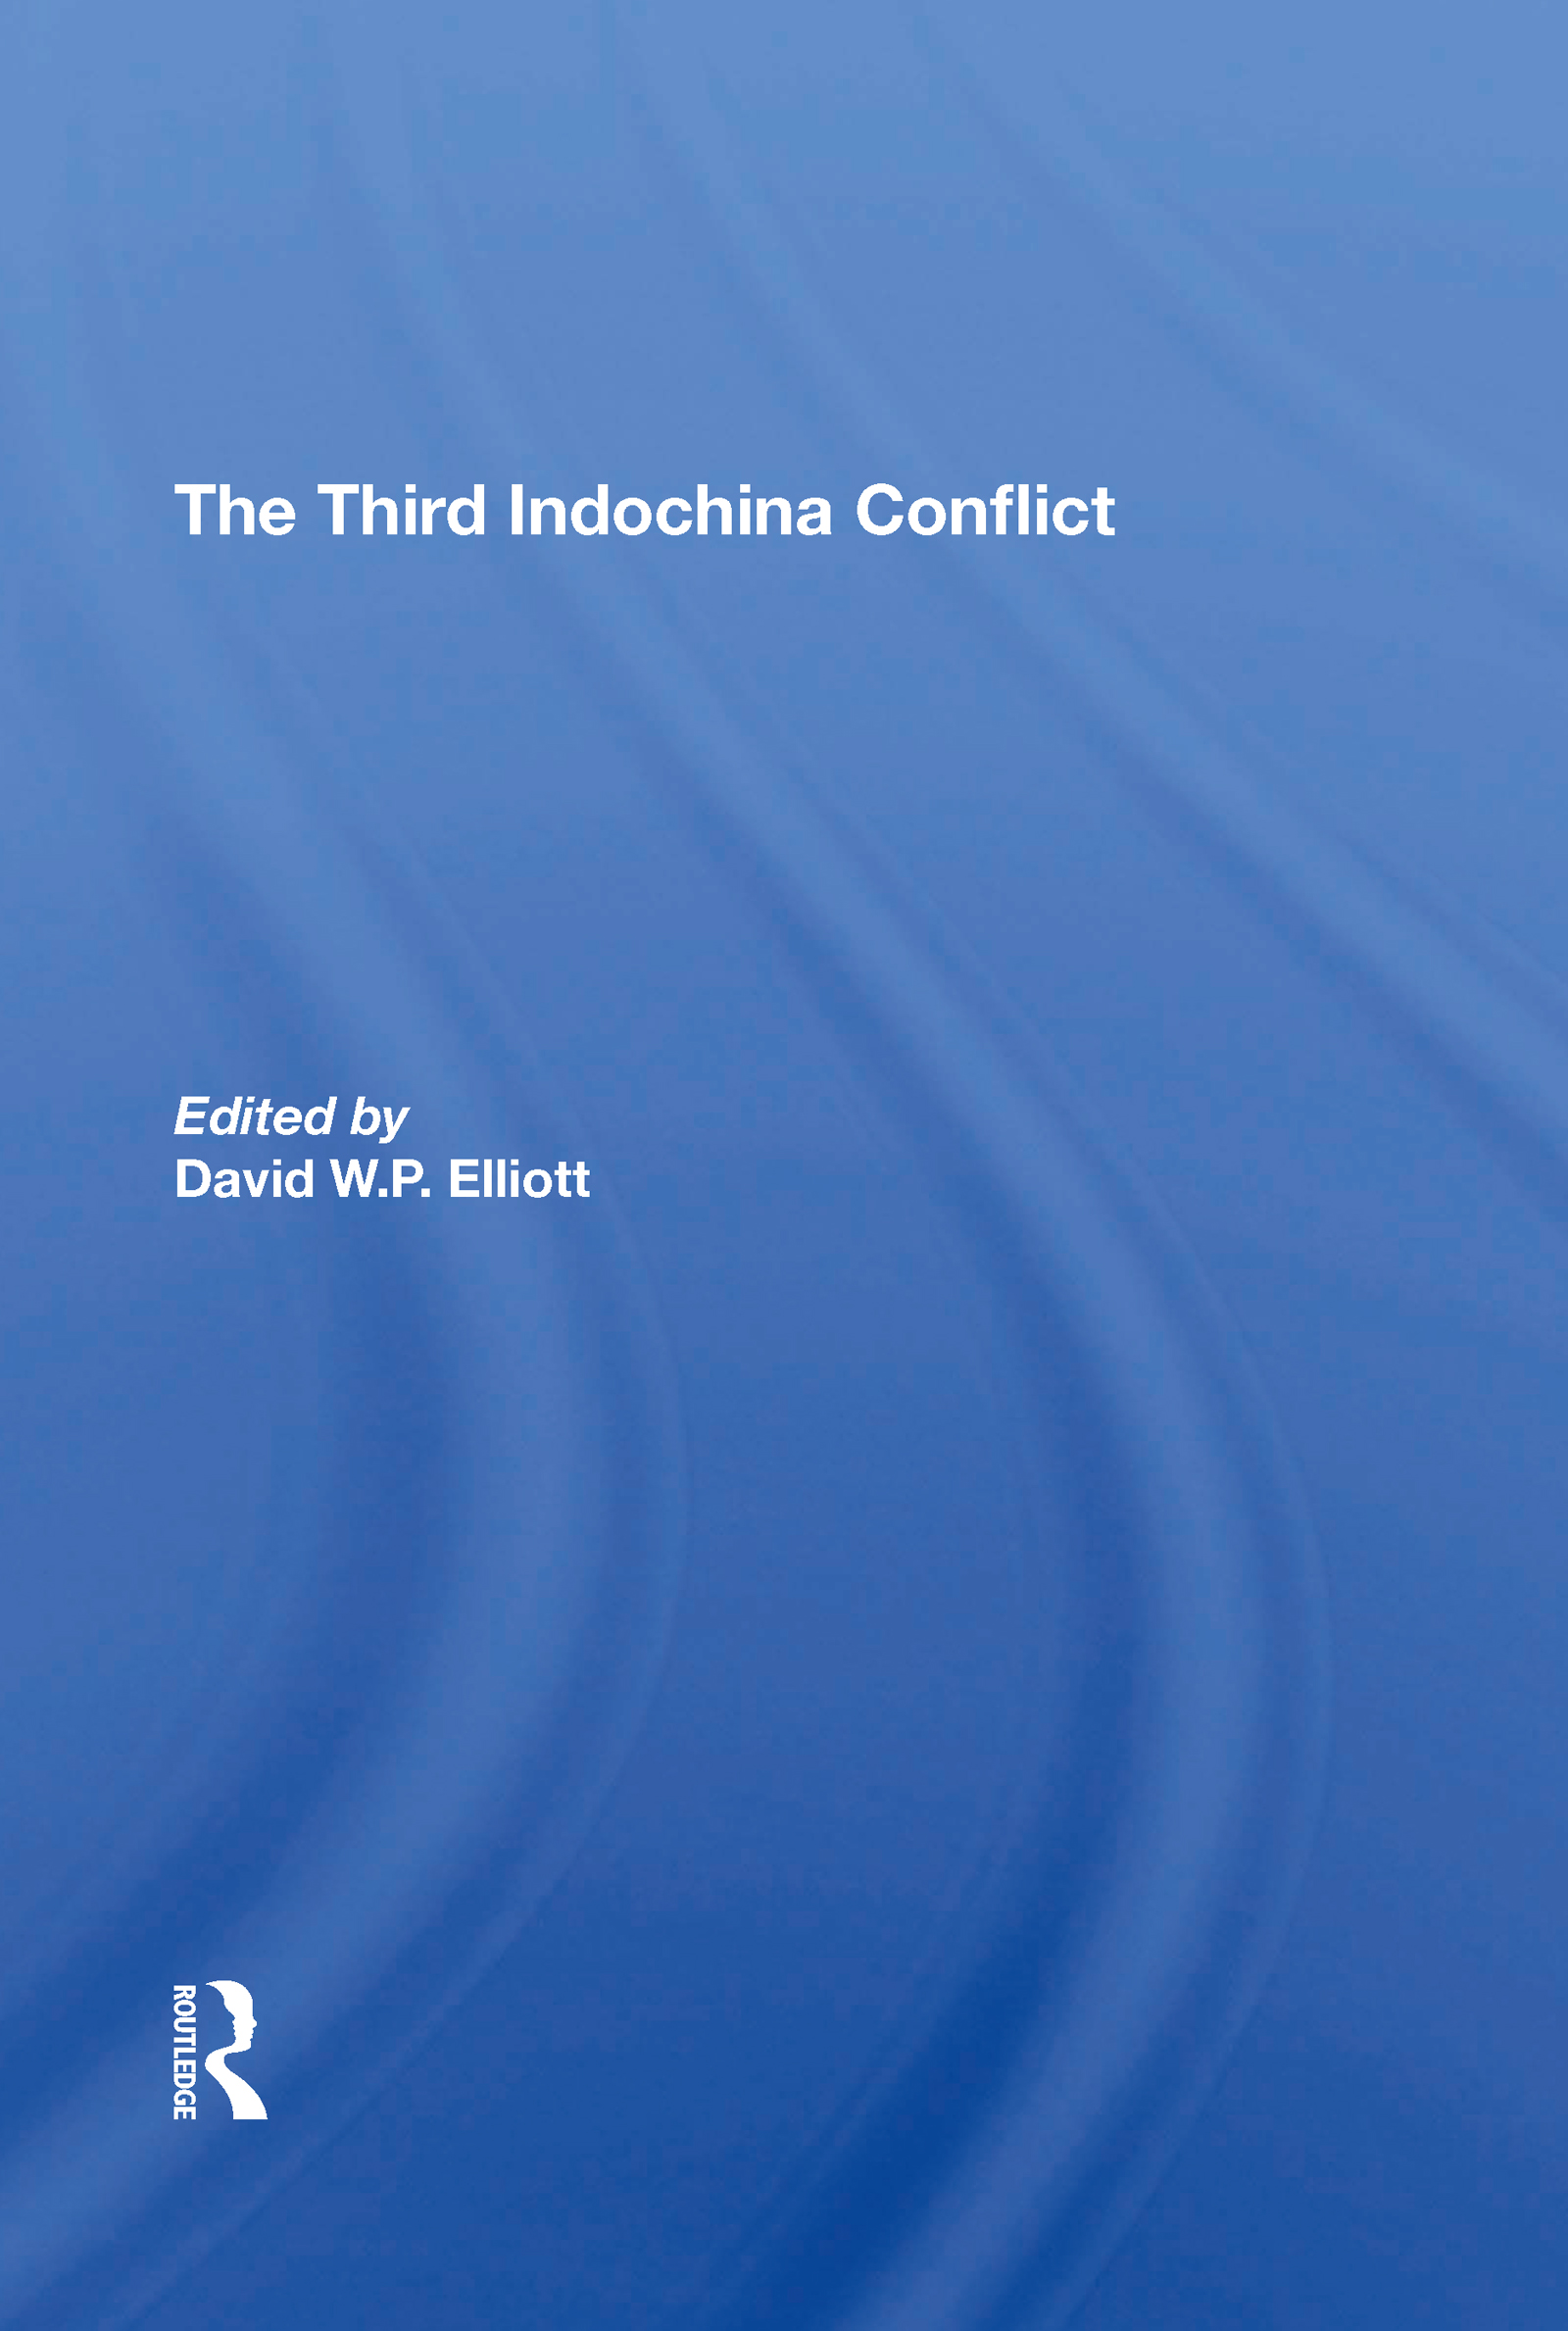 The Third Indochina Conflict